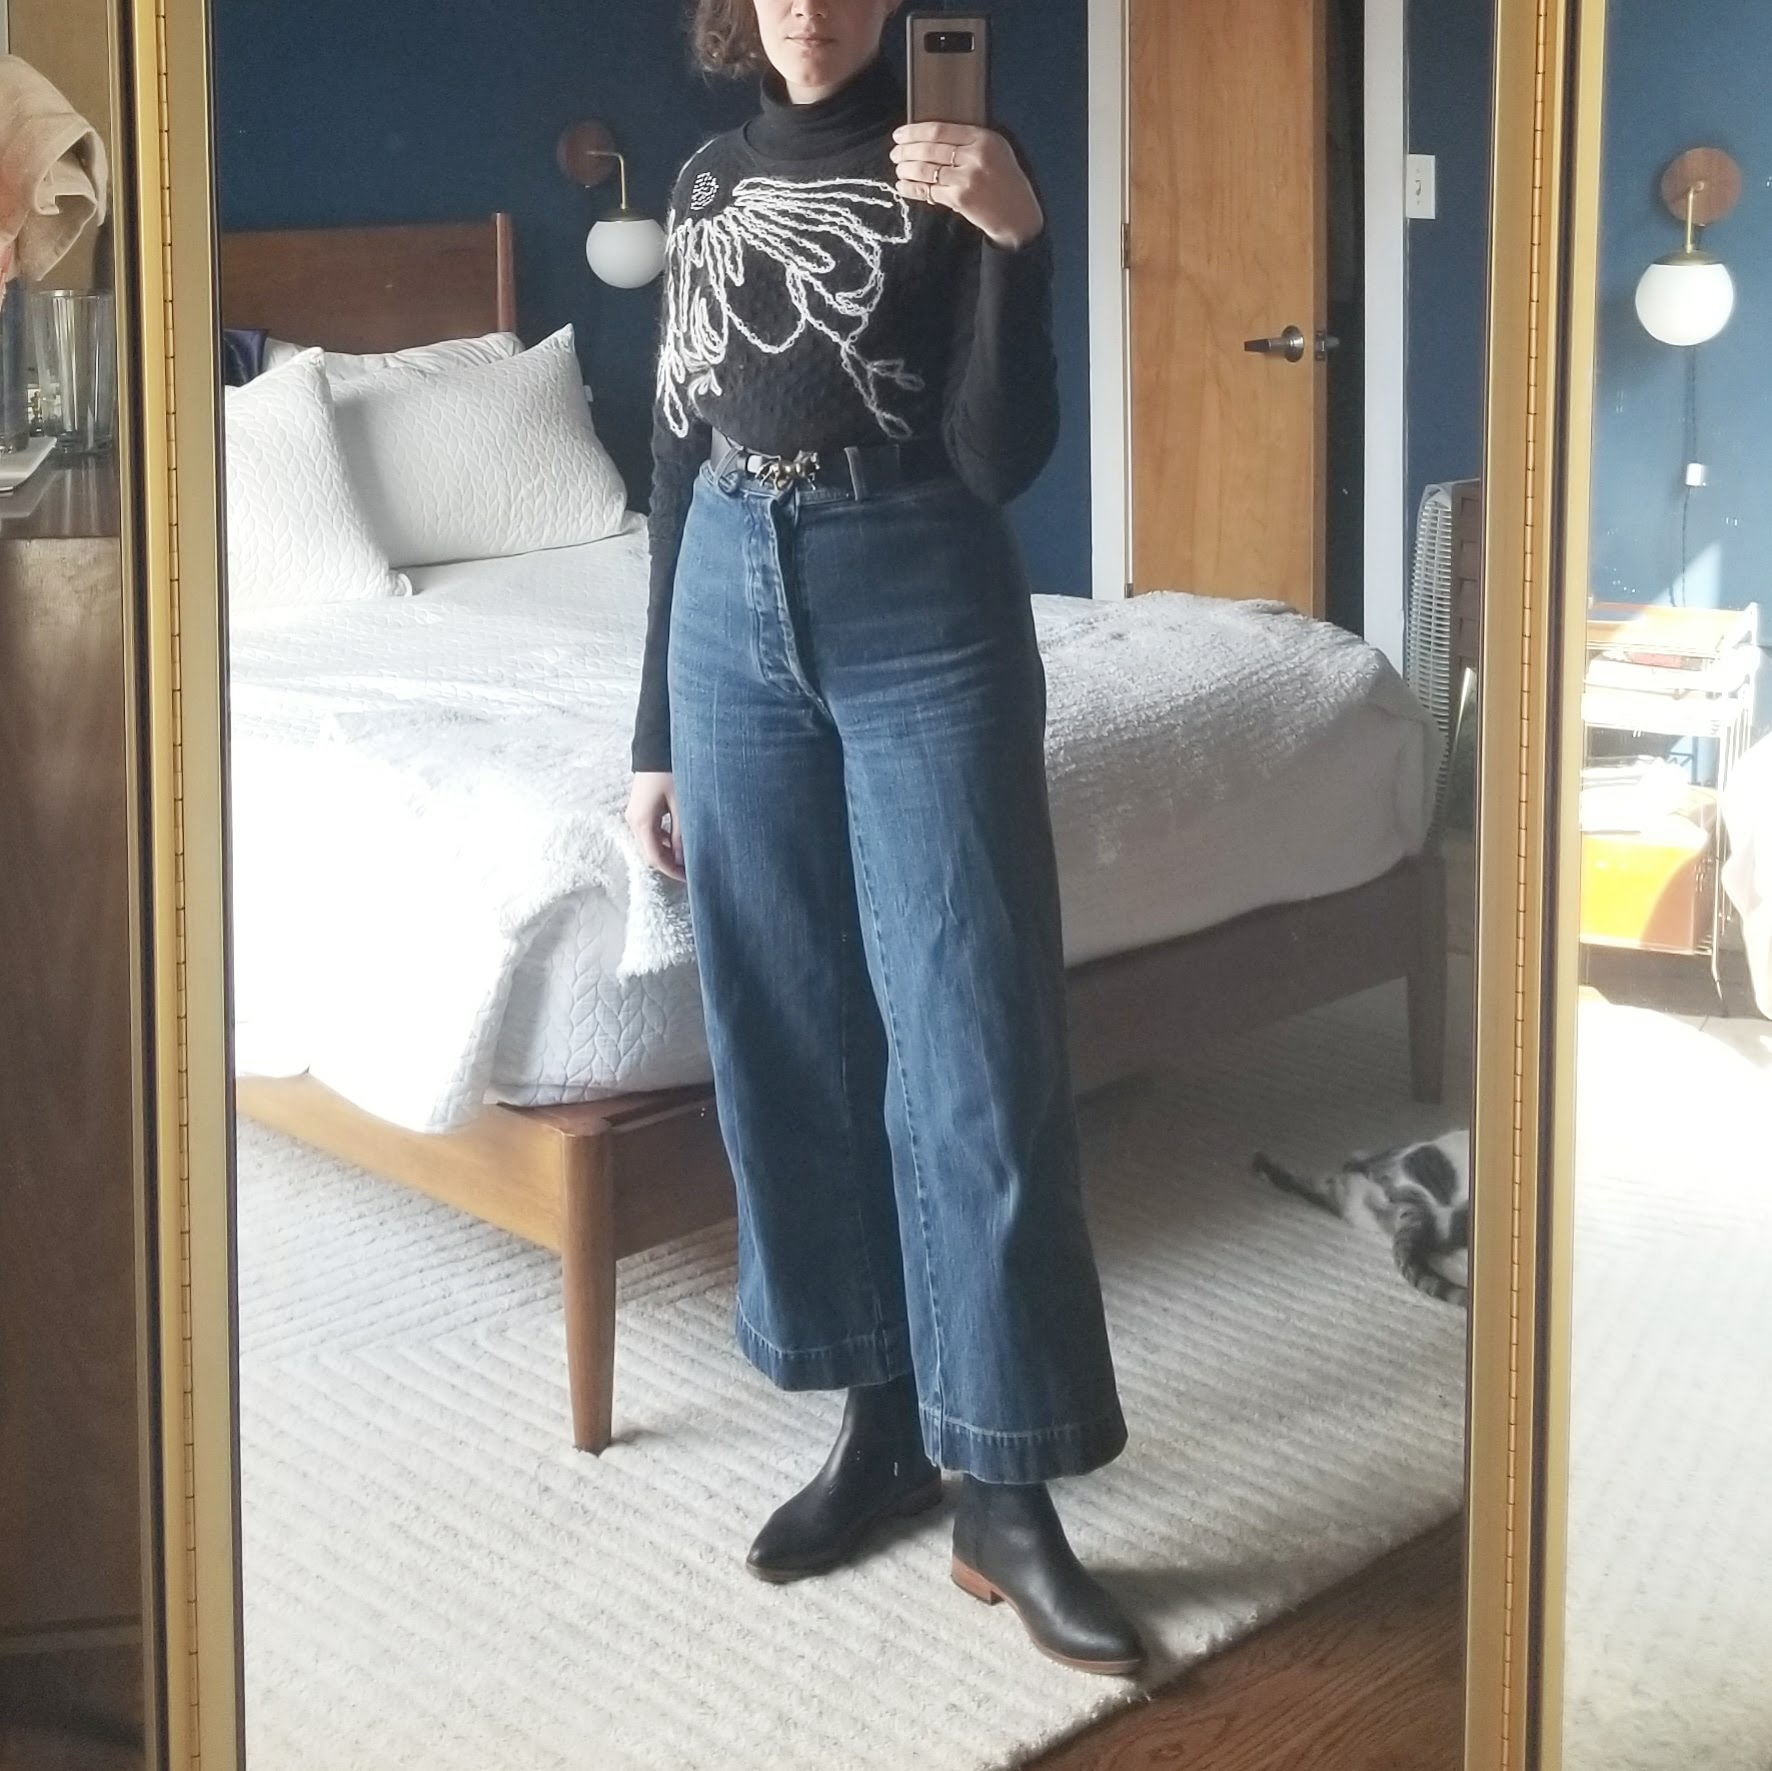 Thursday - March 8, 2018Caron Callahan jeans and a turtleneck/sweater combo. With the turtleneck and sweater both black, they blend together and make it look a little like one garment. The sweater is 3/4 sleeved which wasn't gonna cut it — so cold out this week!